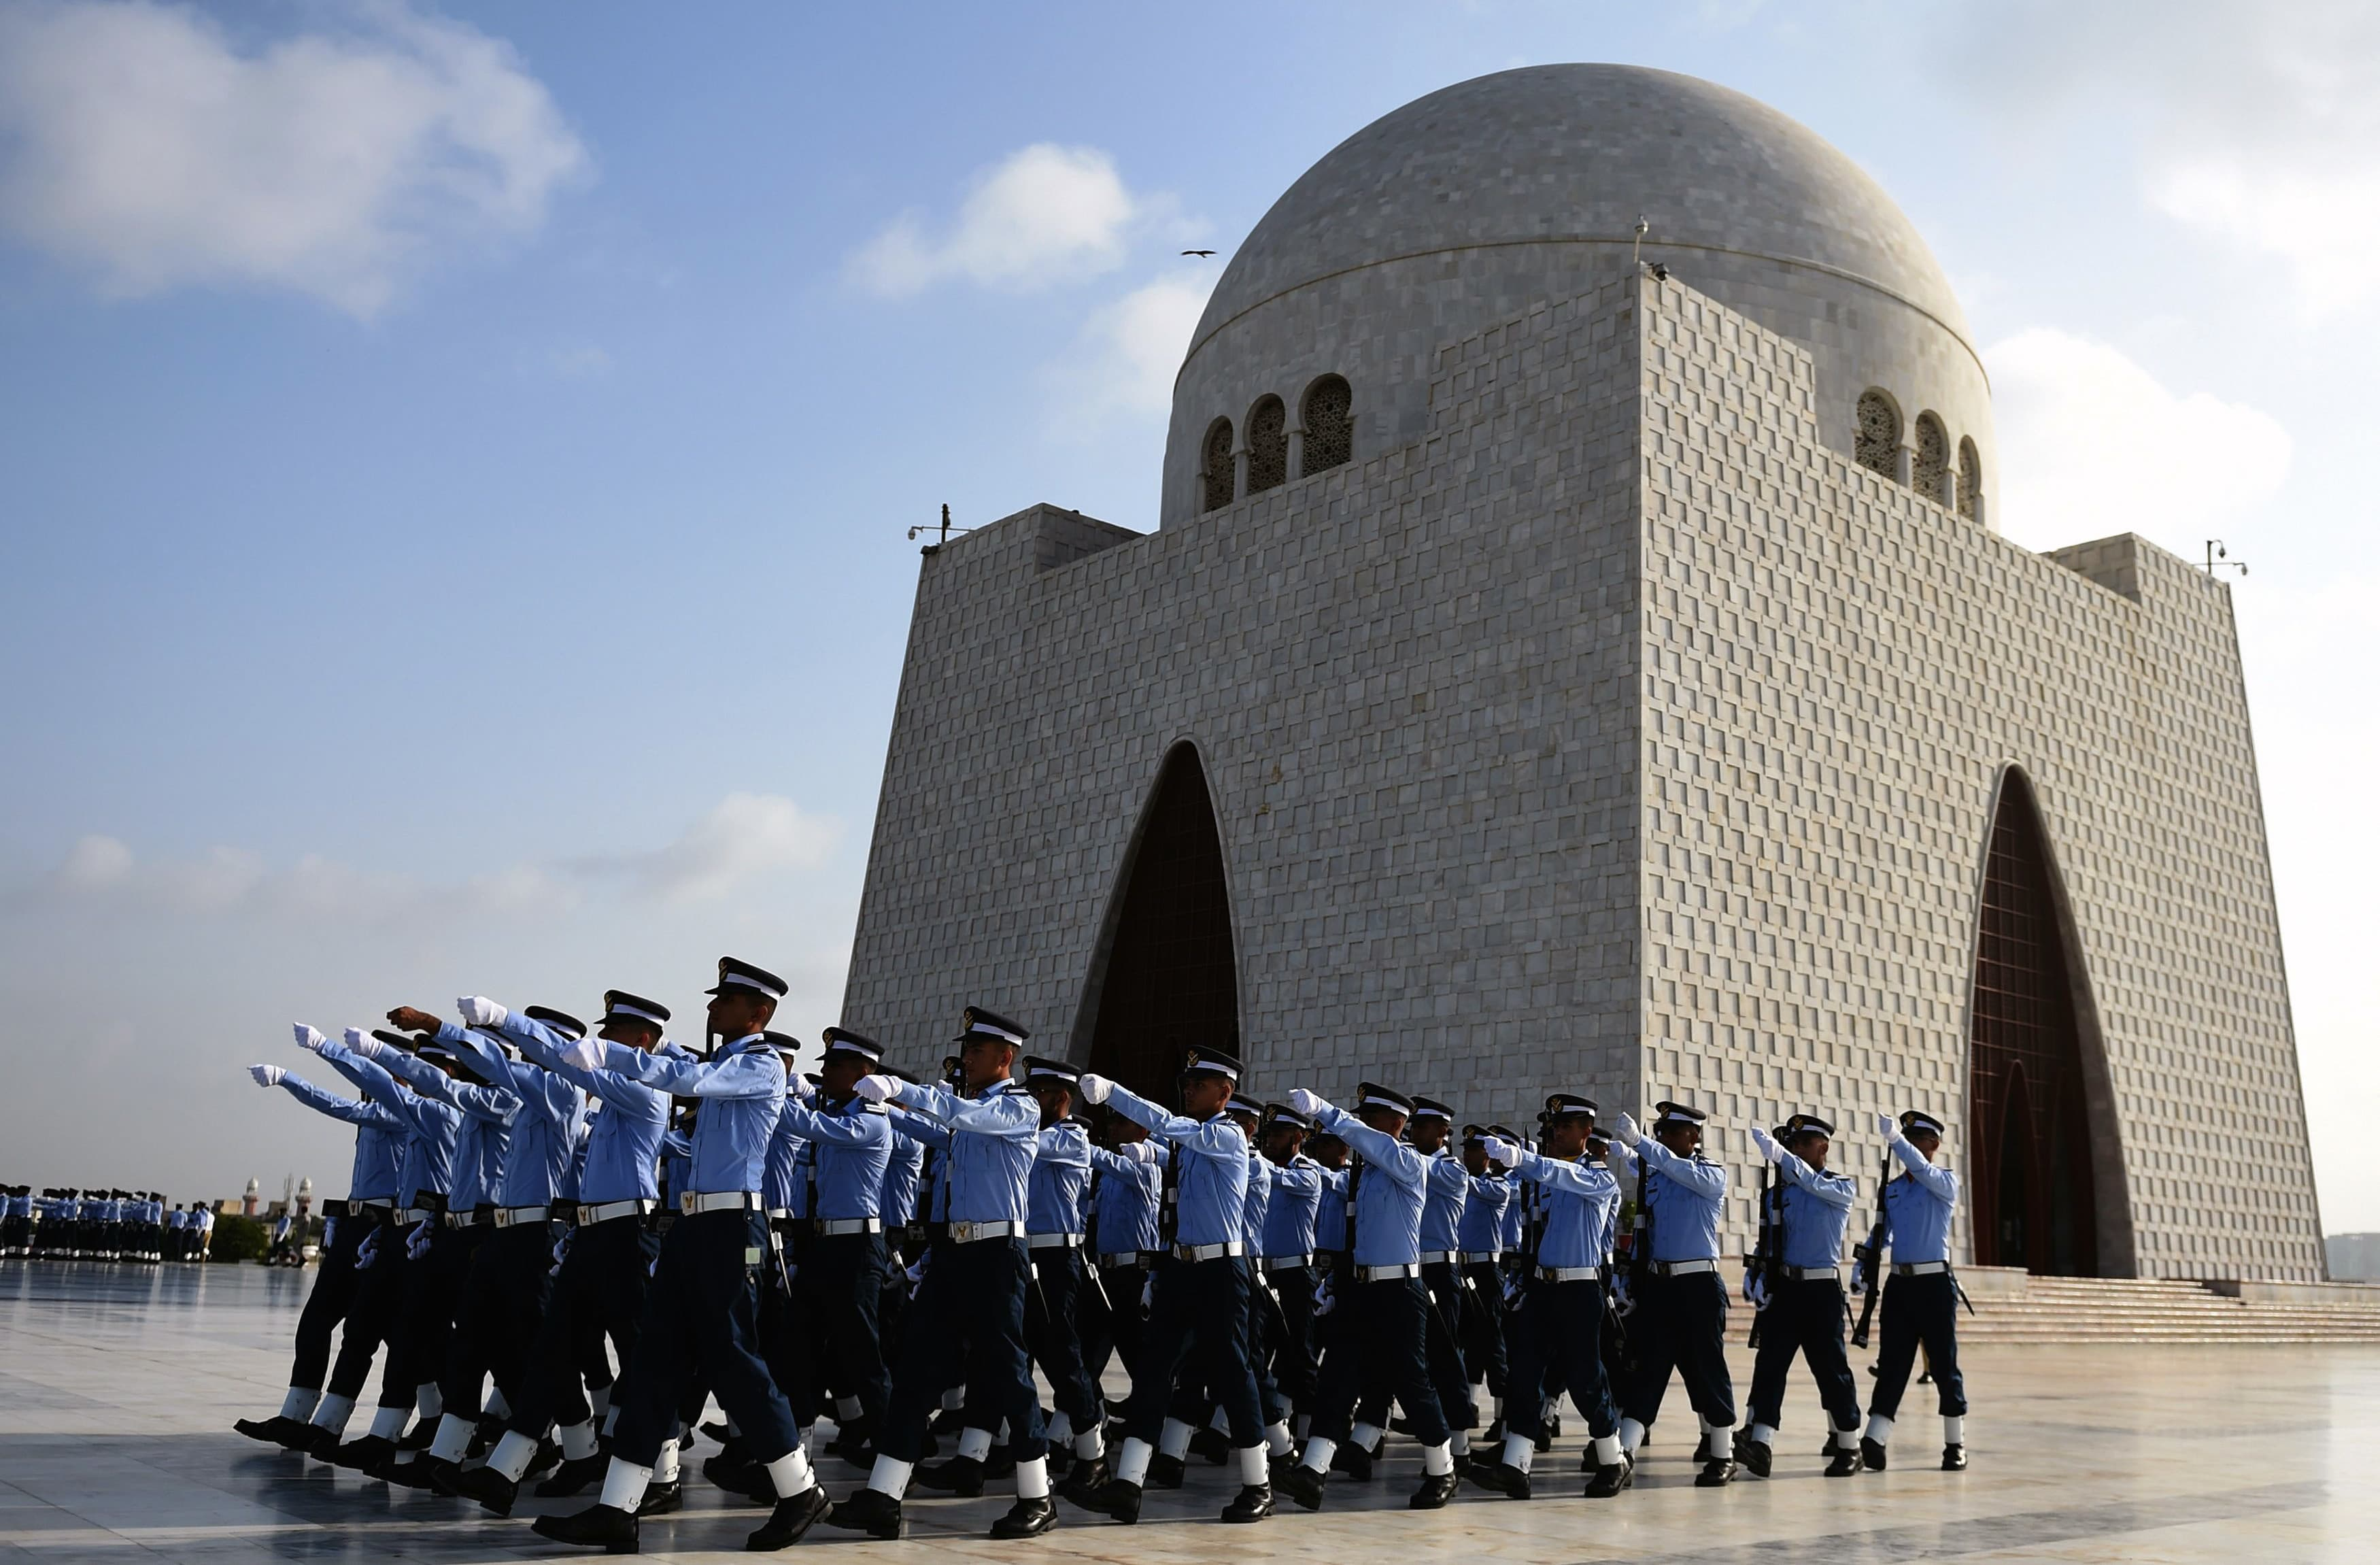 PAF cadets march next to the mausoleum of the country's founder Mohammad Ali Jinnah. —AFP